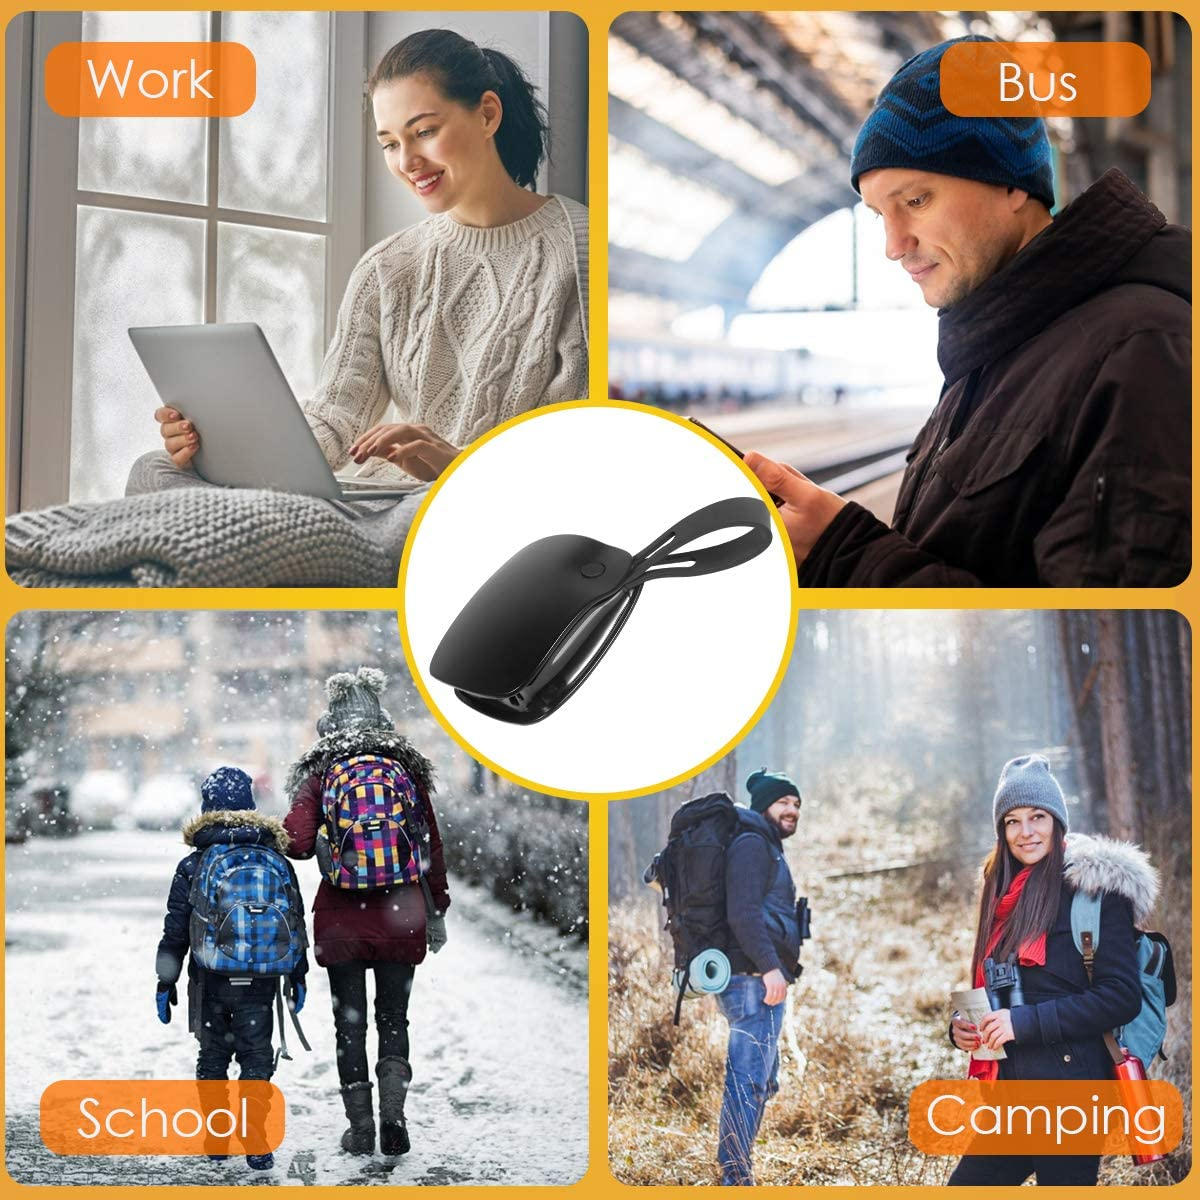 Rechargeable Hand Warmers Best Gifts for Men and Women in Cold Winter 5000mAh Electric Portable Pocket Hand Warmer 2 Adjustable Heat Levels Reusable Power Bank